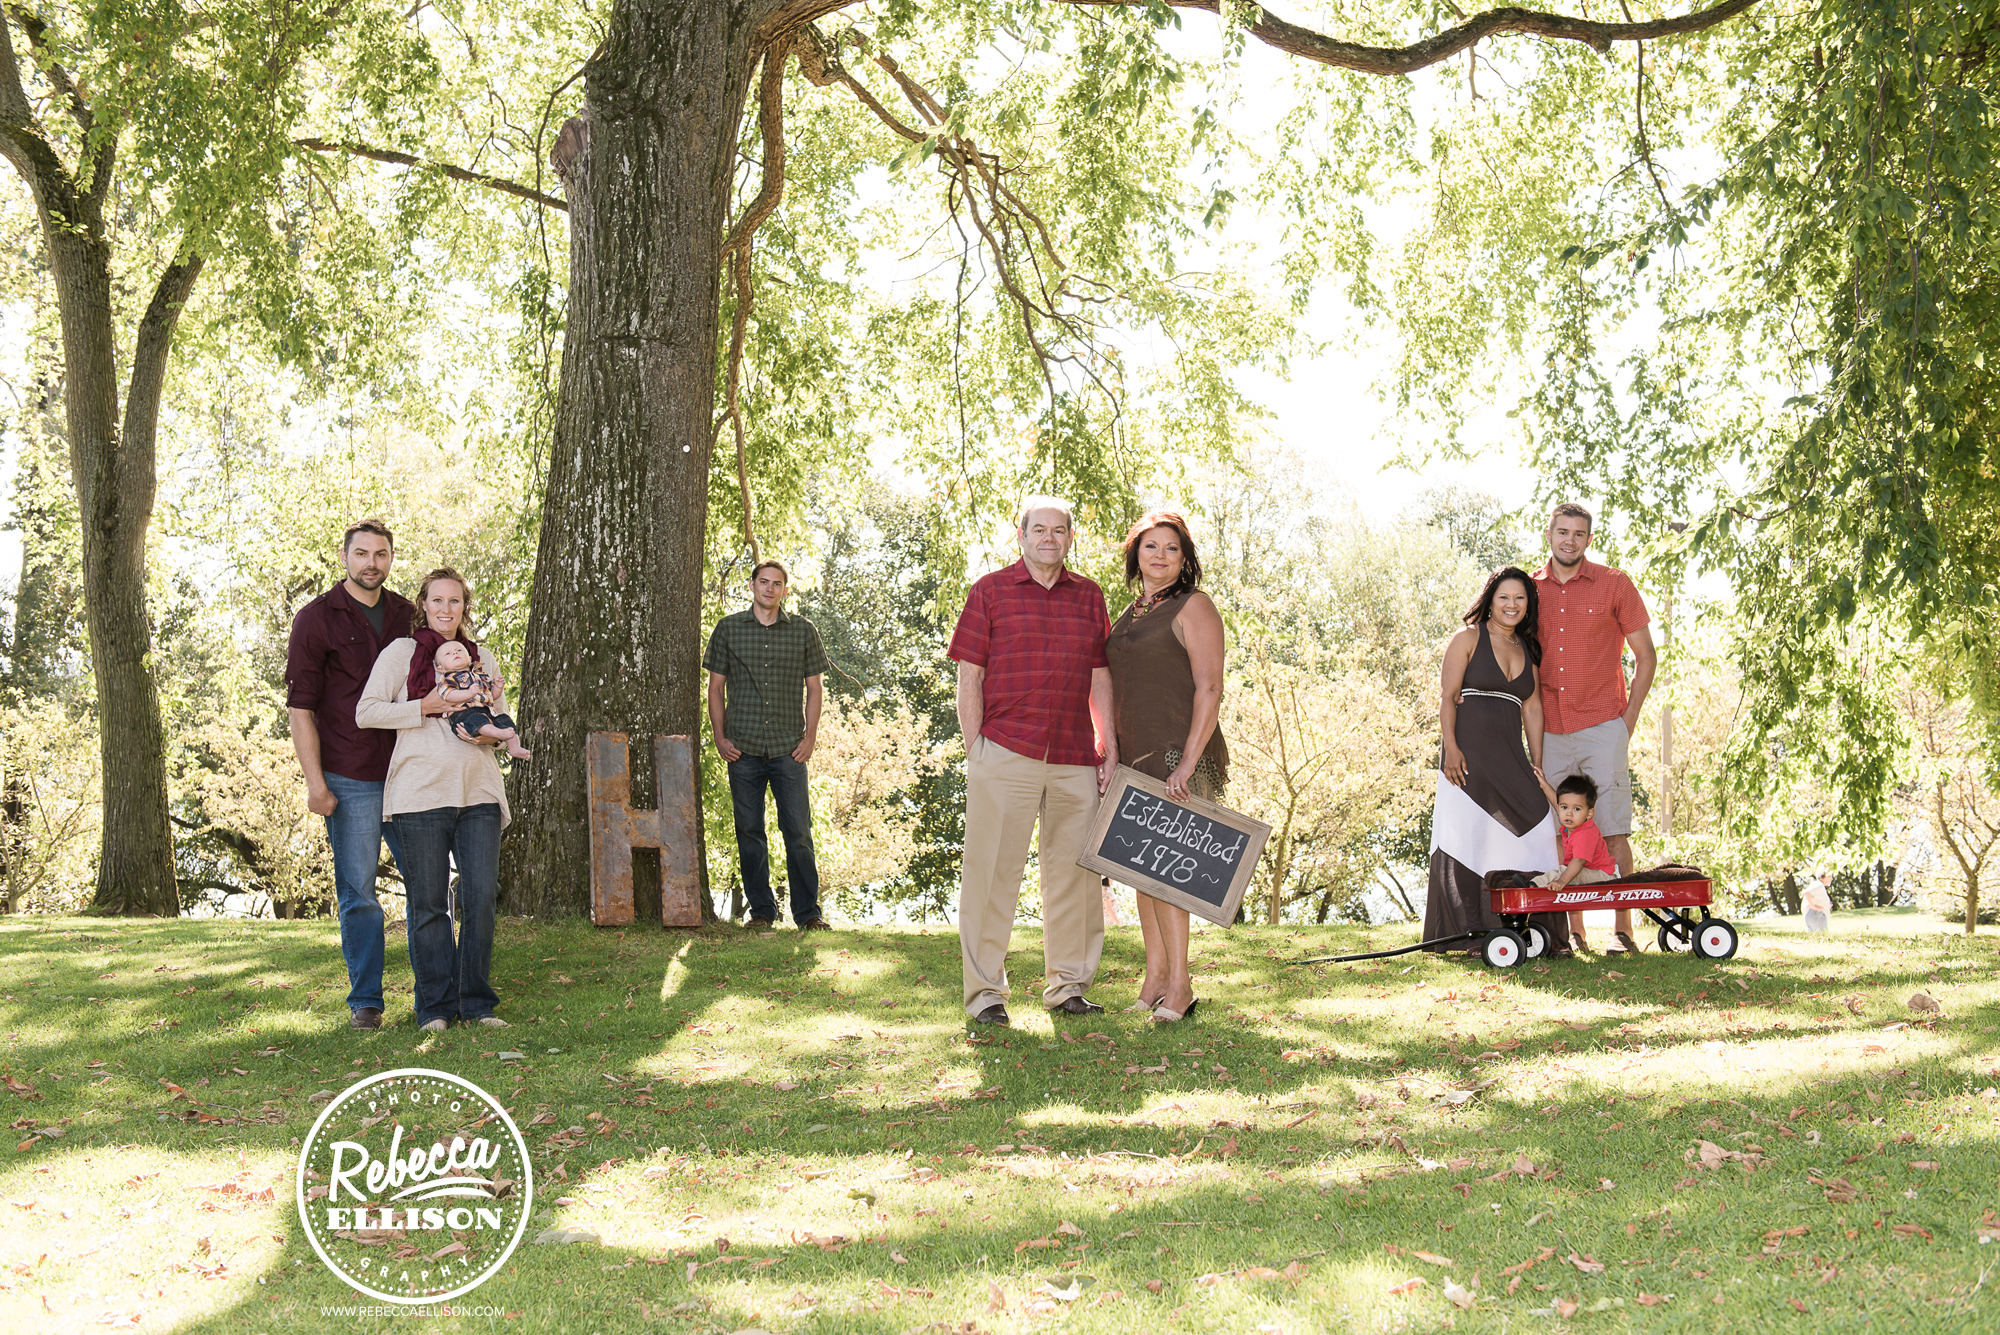 Extended family portraits at Greenlake park in Seattle photographed by Rebecca Ellison Photography